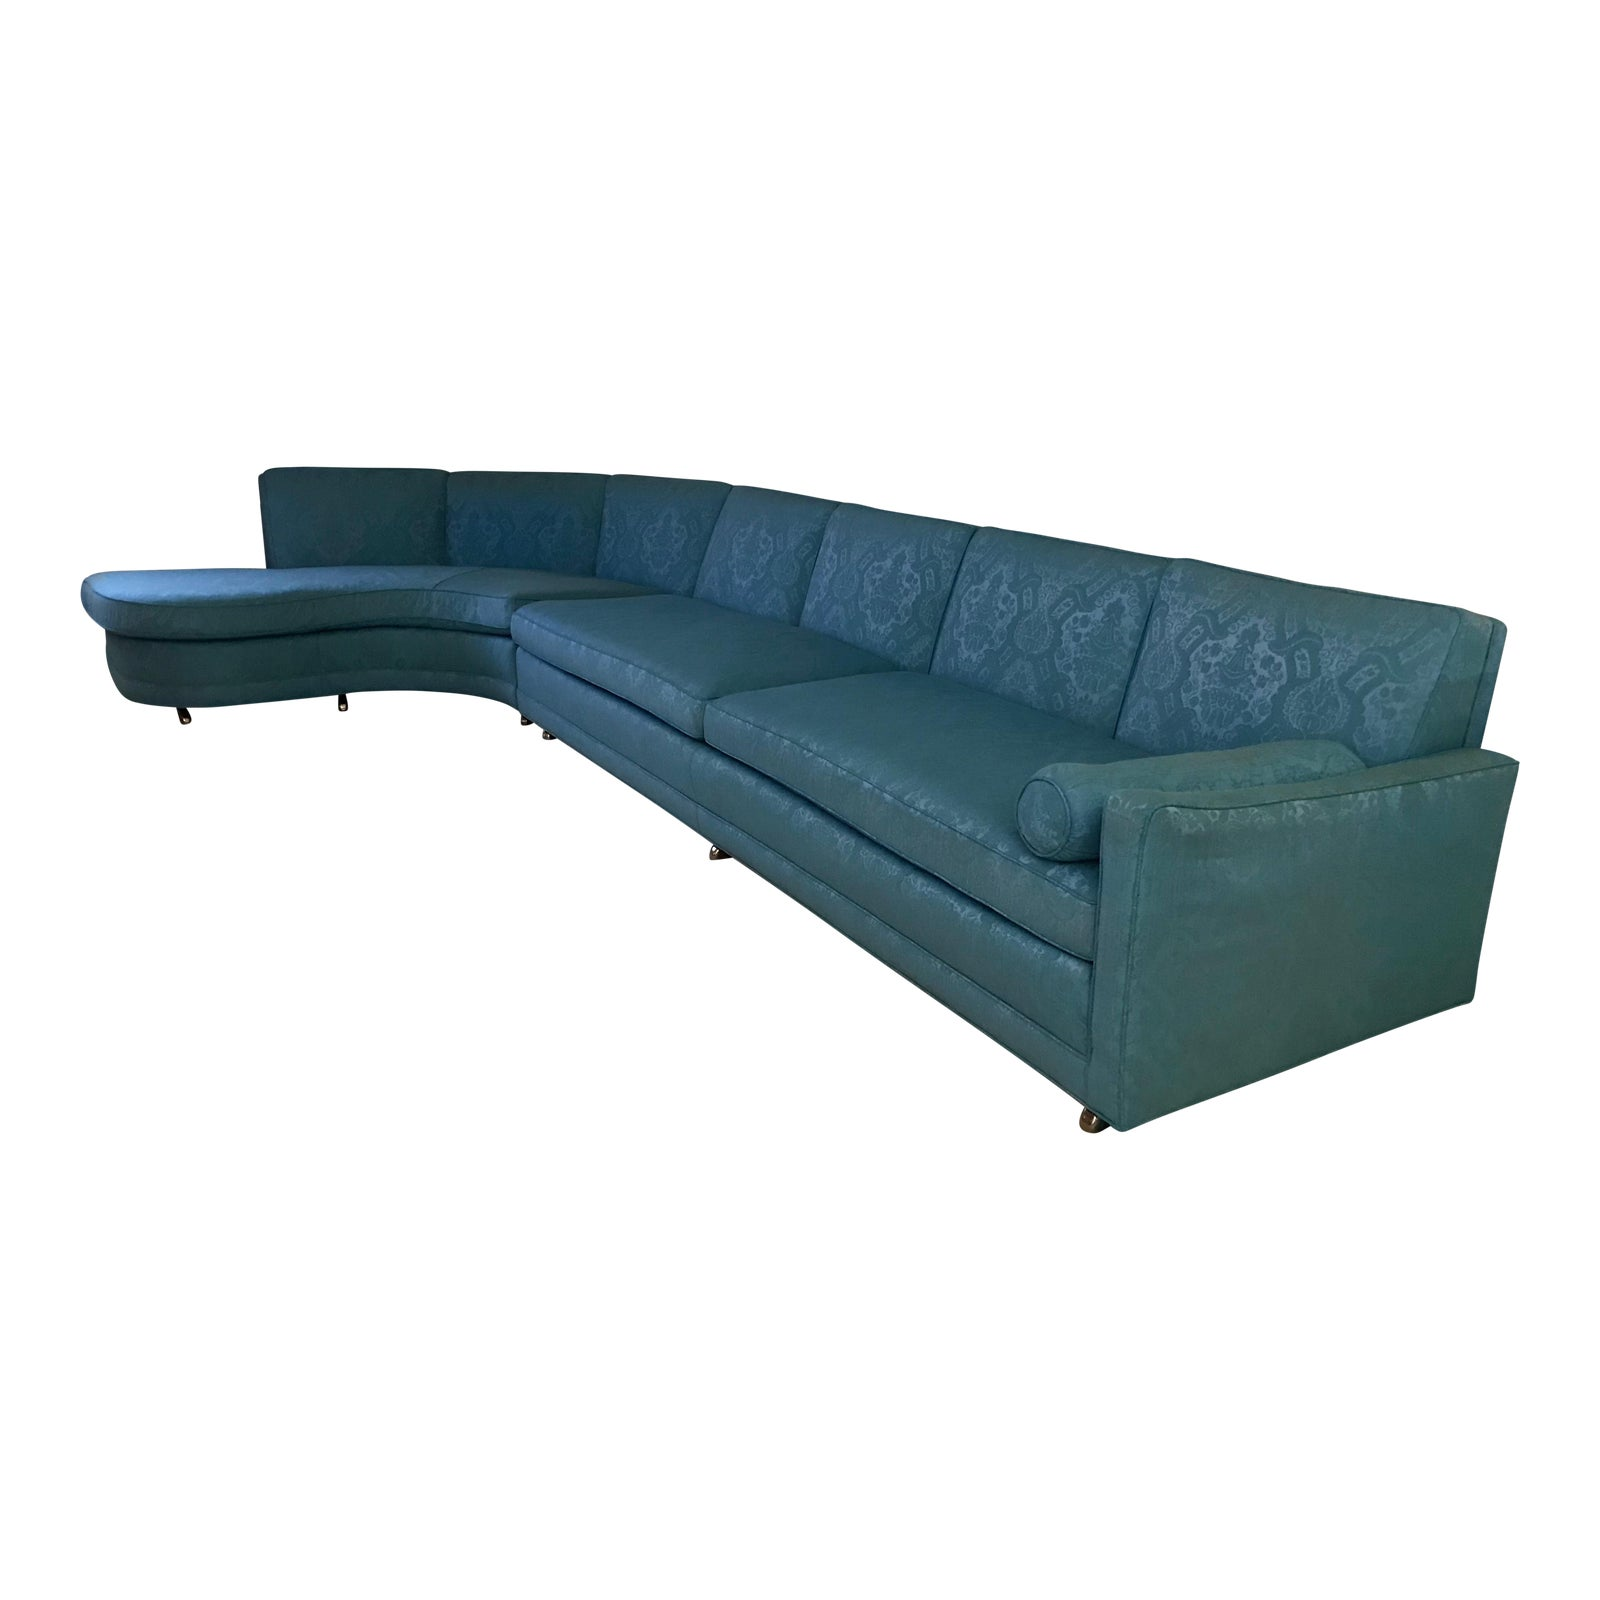 Erin lambeth mid century teal sectional sofa chairish